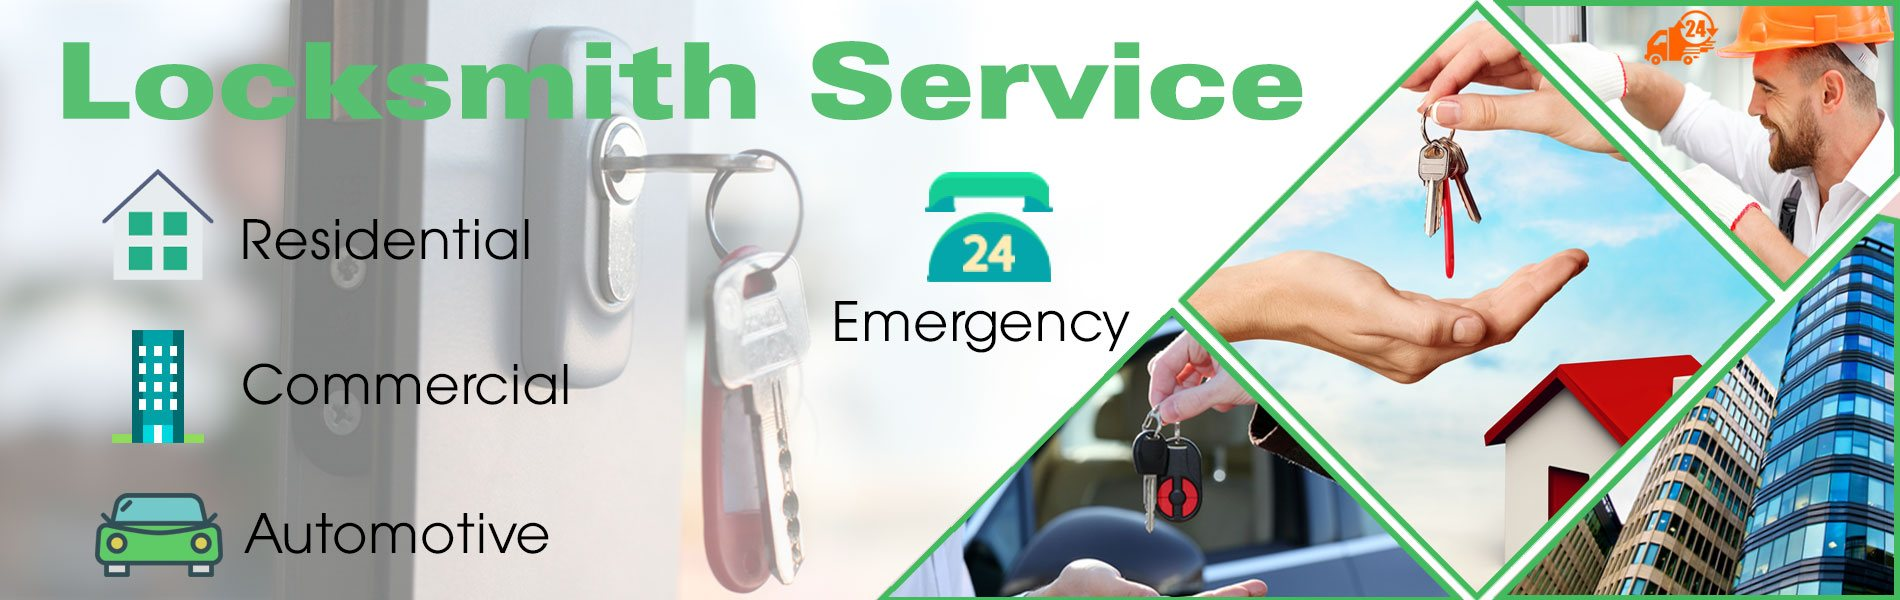 Lock Safe Services St Louis, MO 314-800-0662